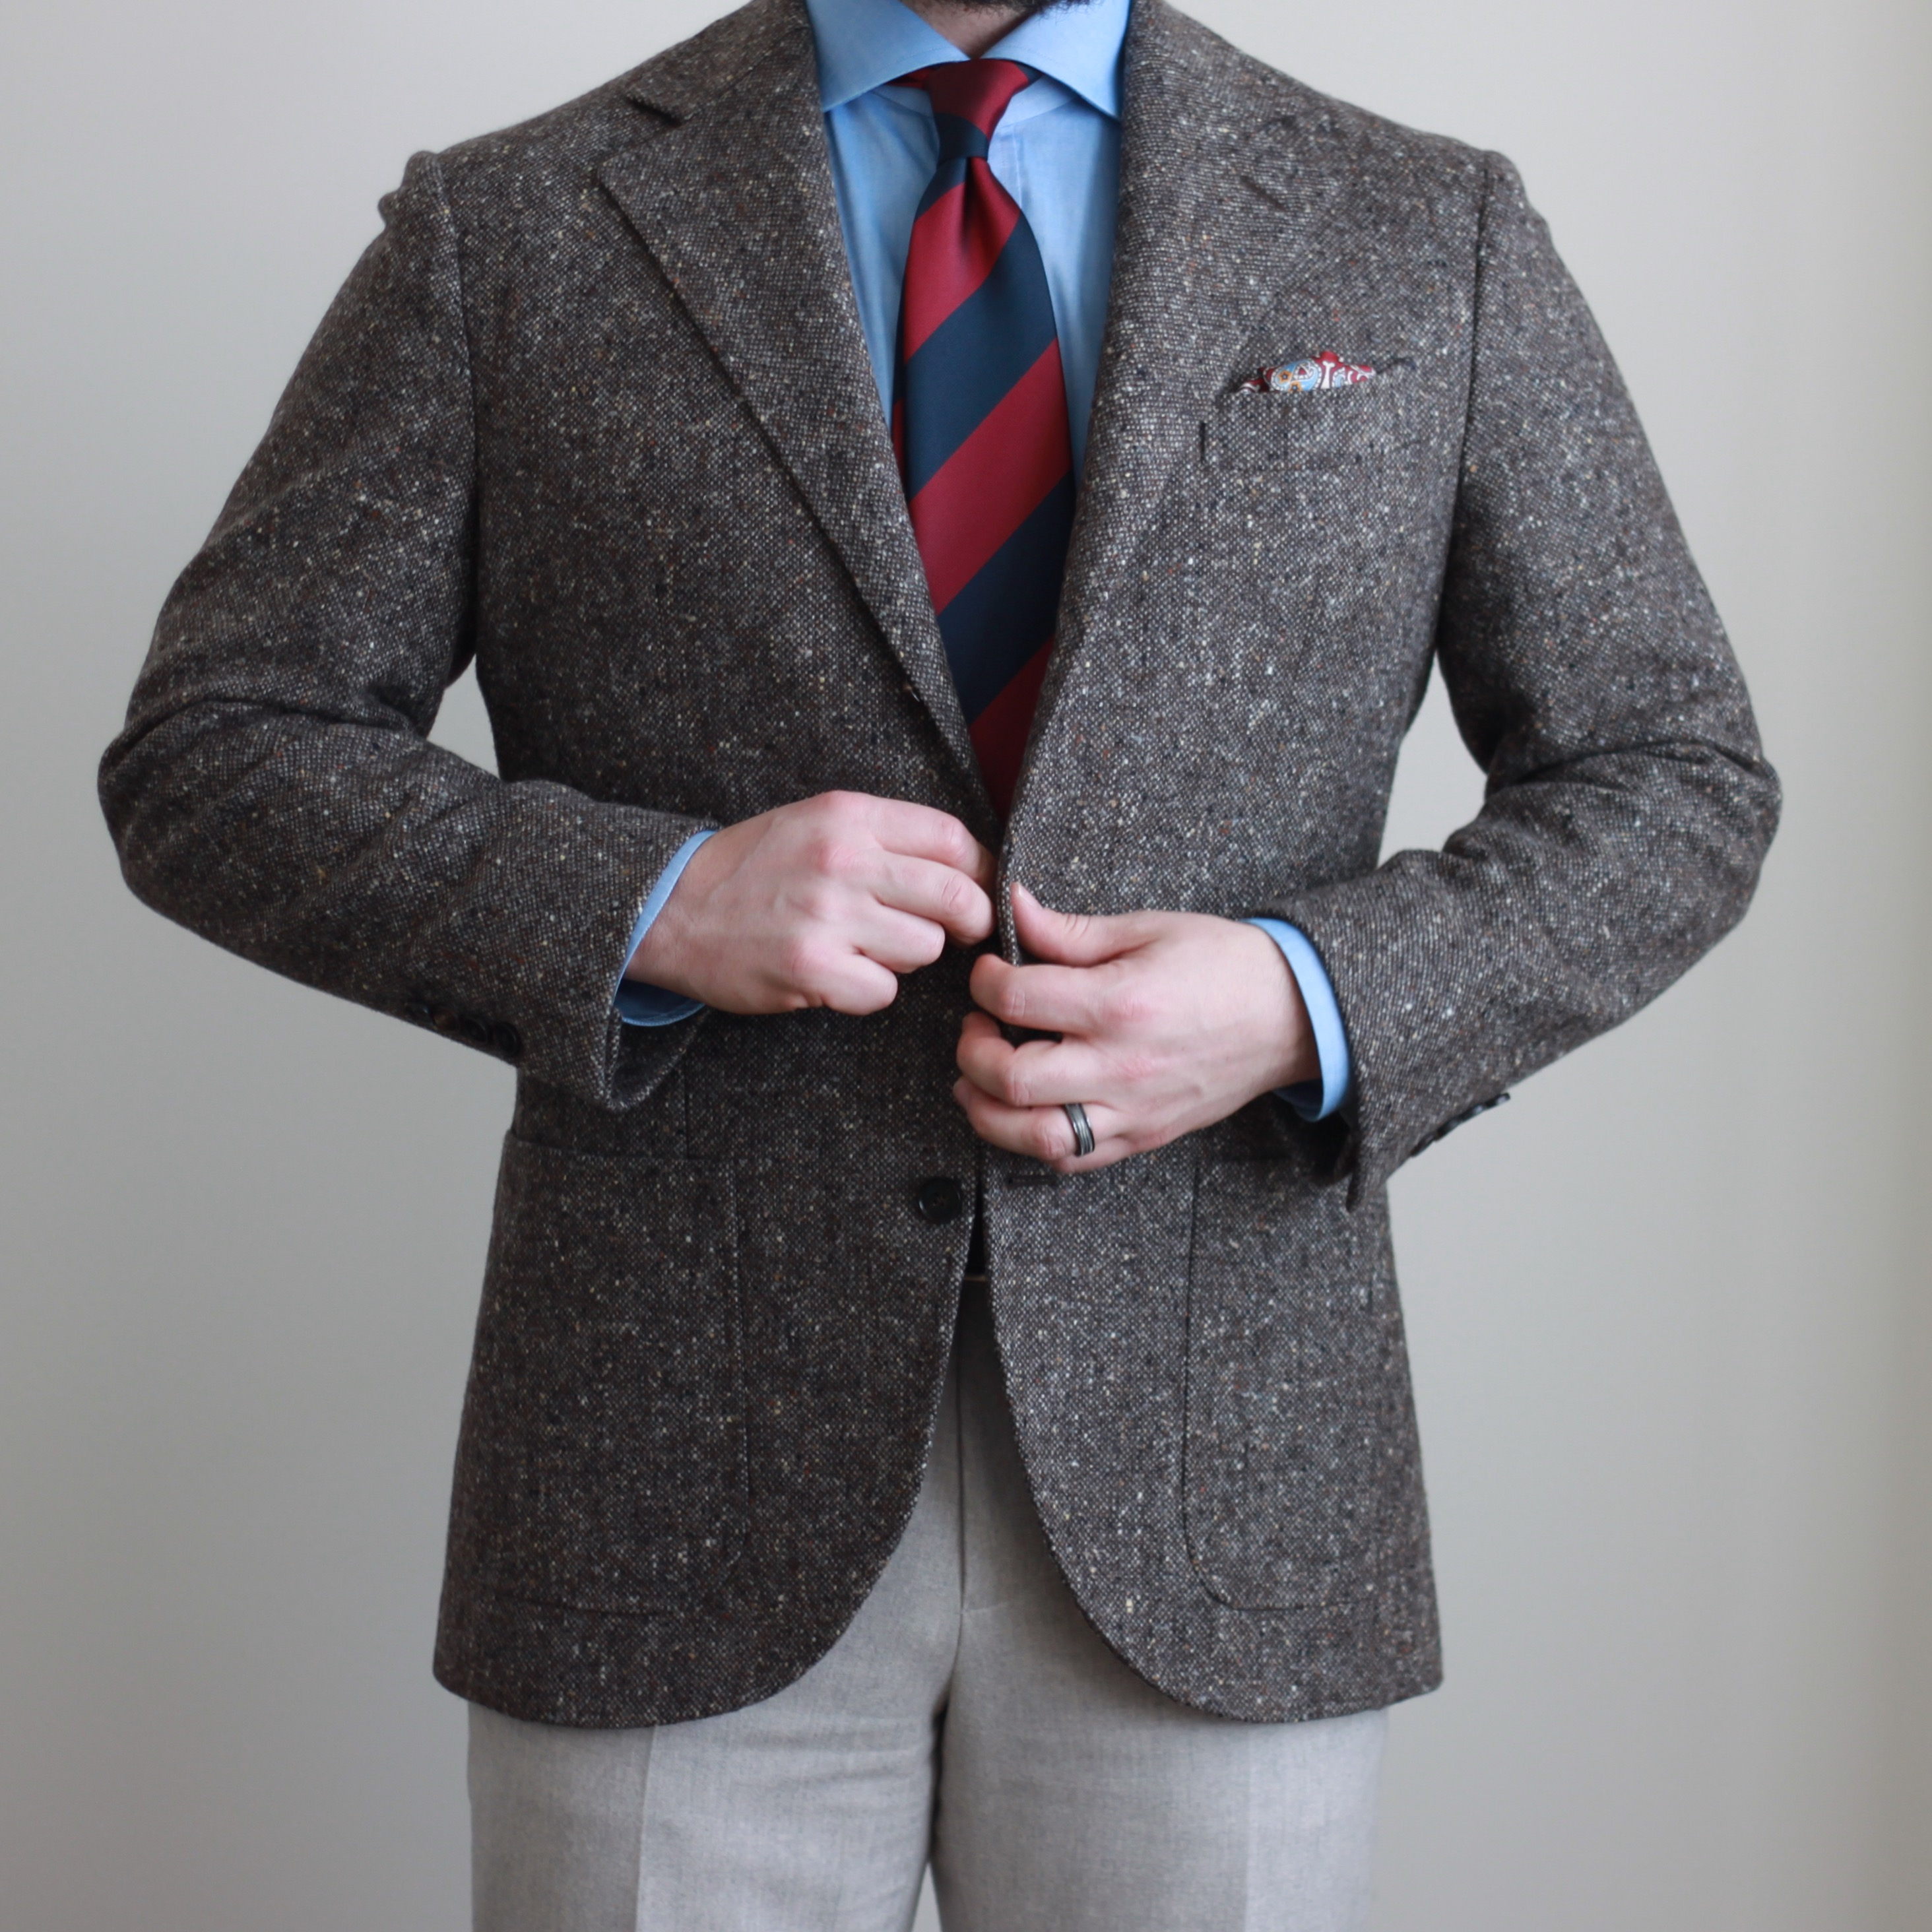 tweed, donegal, block stripe tie, odd jacket, sport coat, flannel trousers